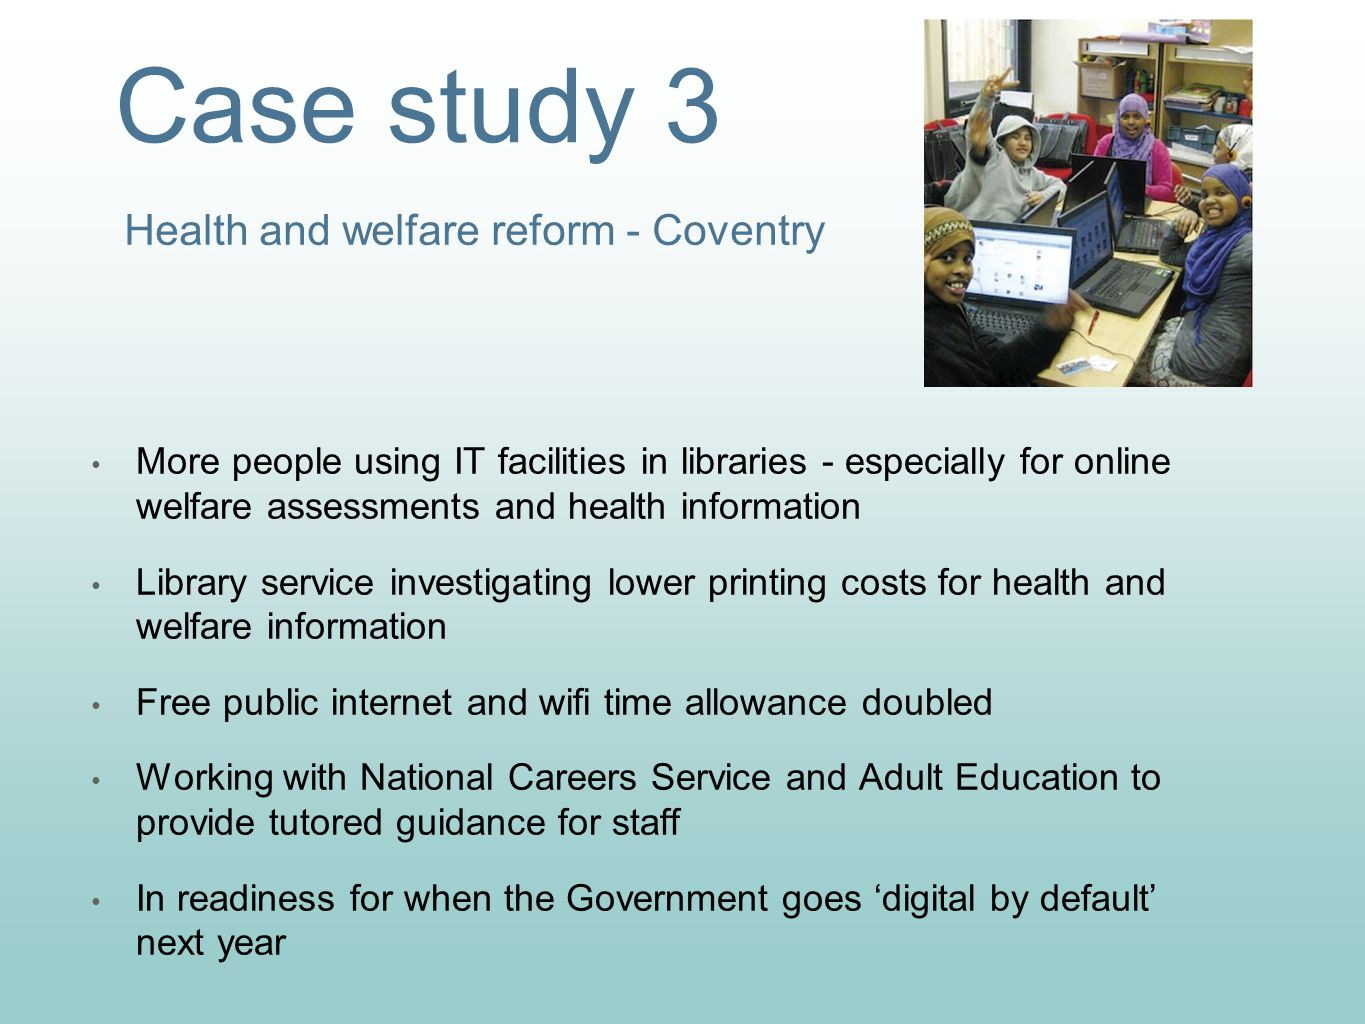 Case study 3 Health and welfare reform - Coventry More people using IT facilities in libraries - especially for online welfare assessments and health information Library service investigating lower printing costs for health and welfare information Free public internet and wifi time allowance doubled Working with National Careers Service and Adult Education to provide tutored guidance for staff In readiness for when the Government goes 'digital by default' next year